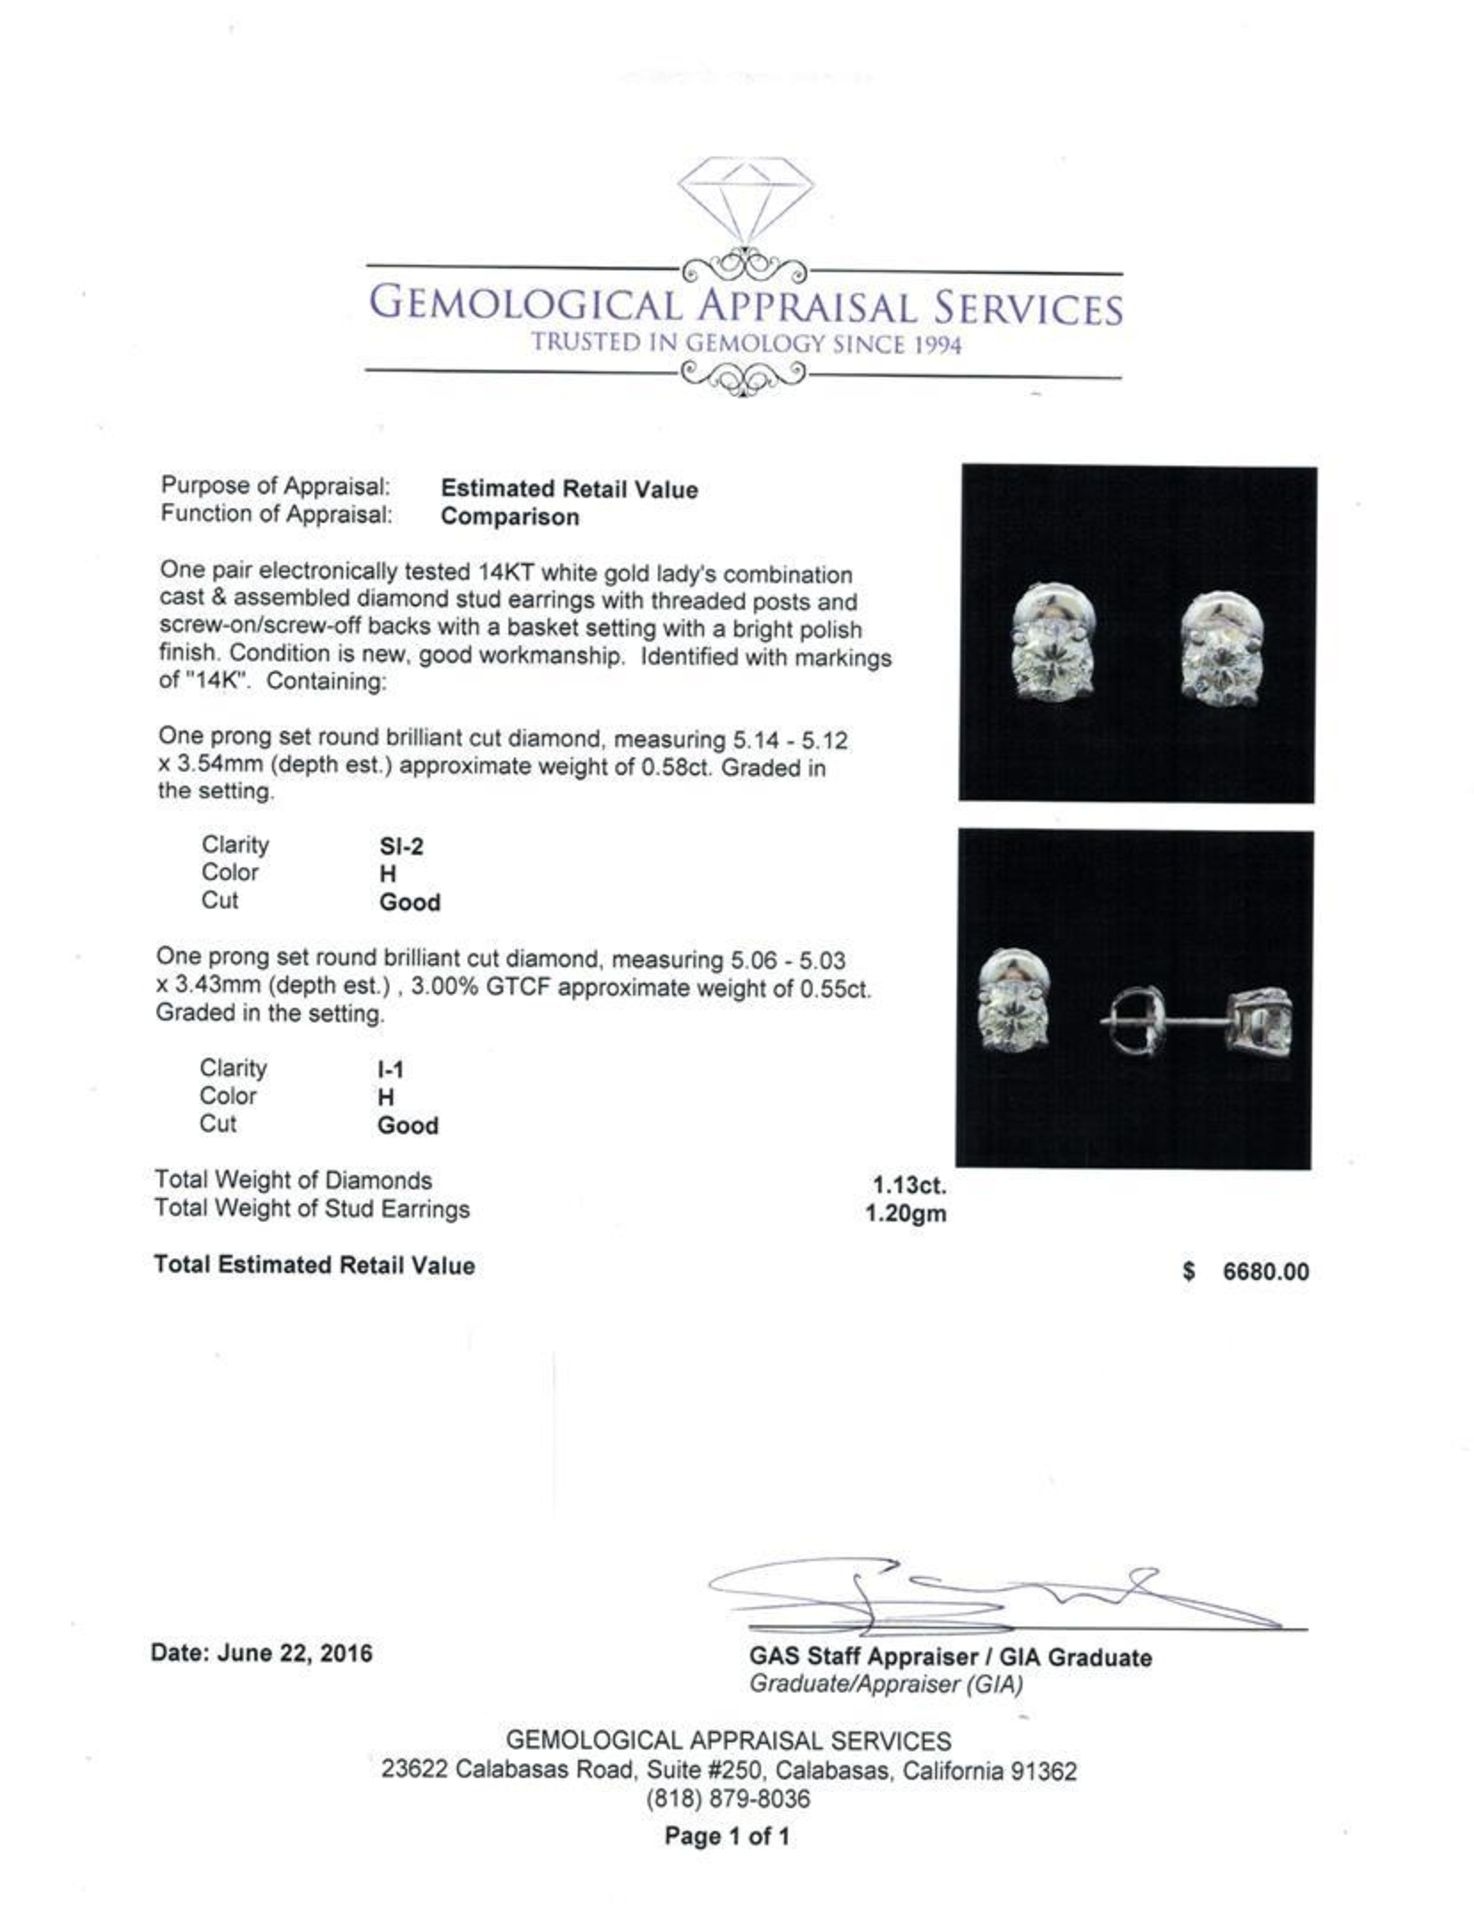 1.13 ctw Diamond Stud Earrings - 14KT White Gold - Image 3 of 3